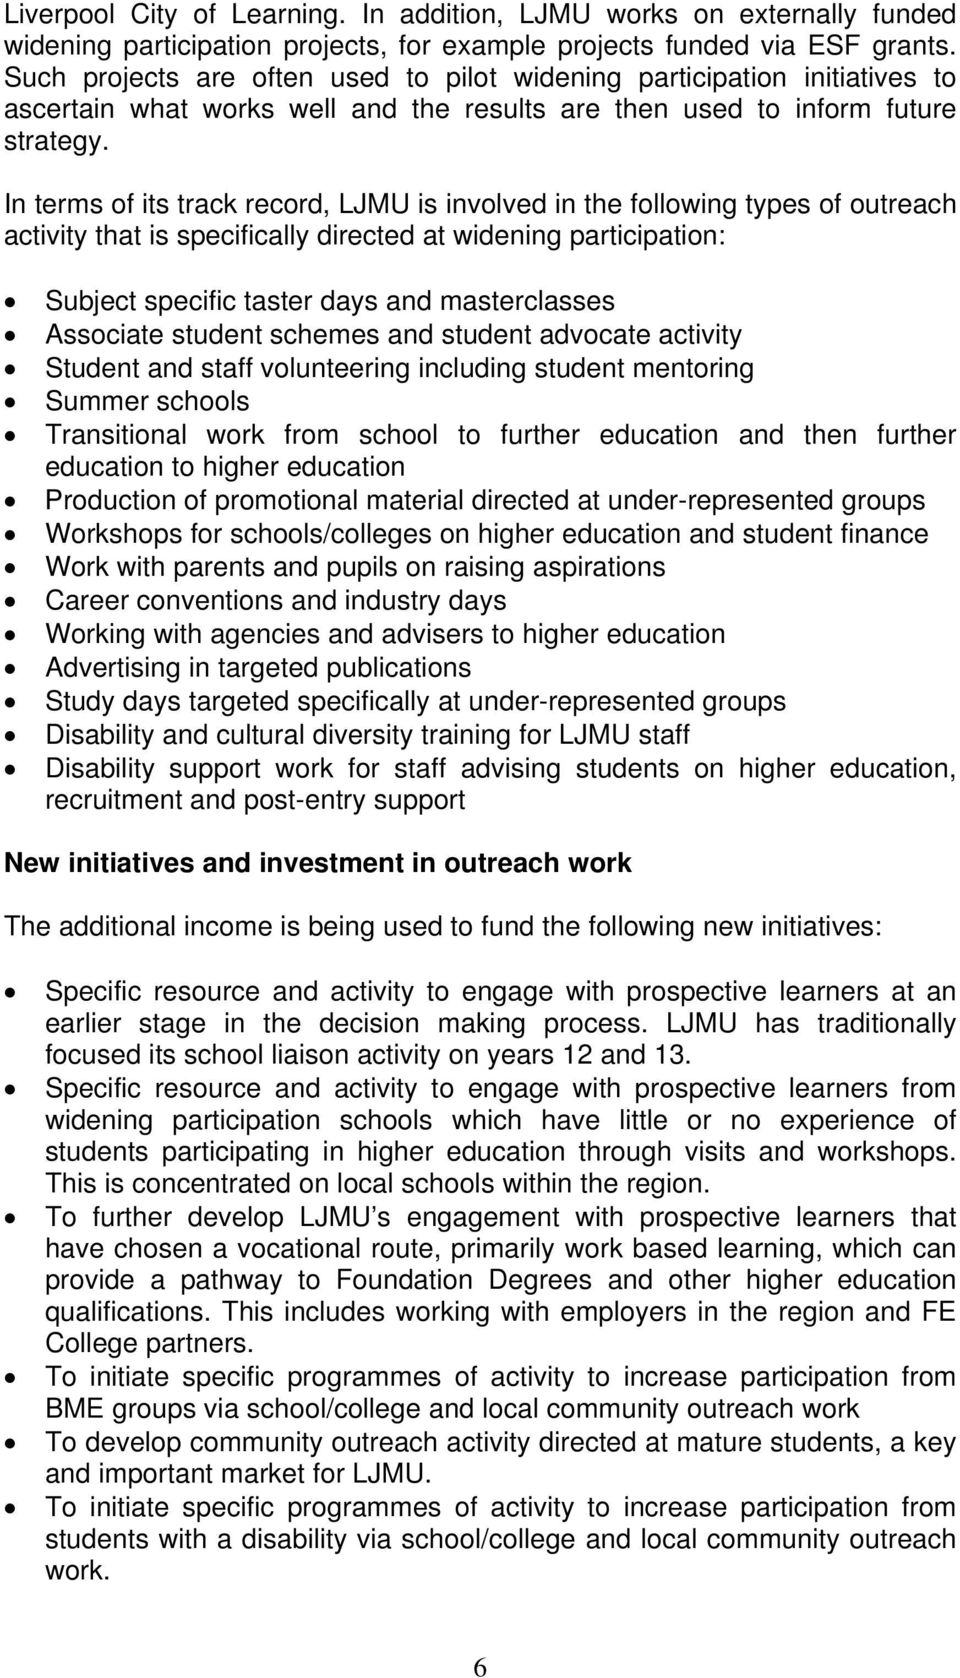 In terms of its track record, LJMU is involved in the following types of outreach activity that is specifically directed at widening participation: Subject specific taster days and masterclasses